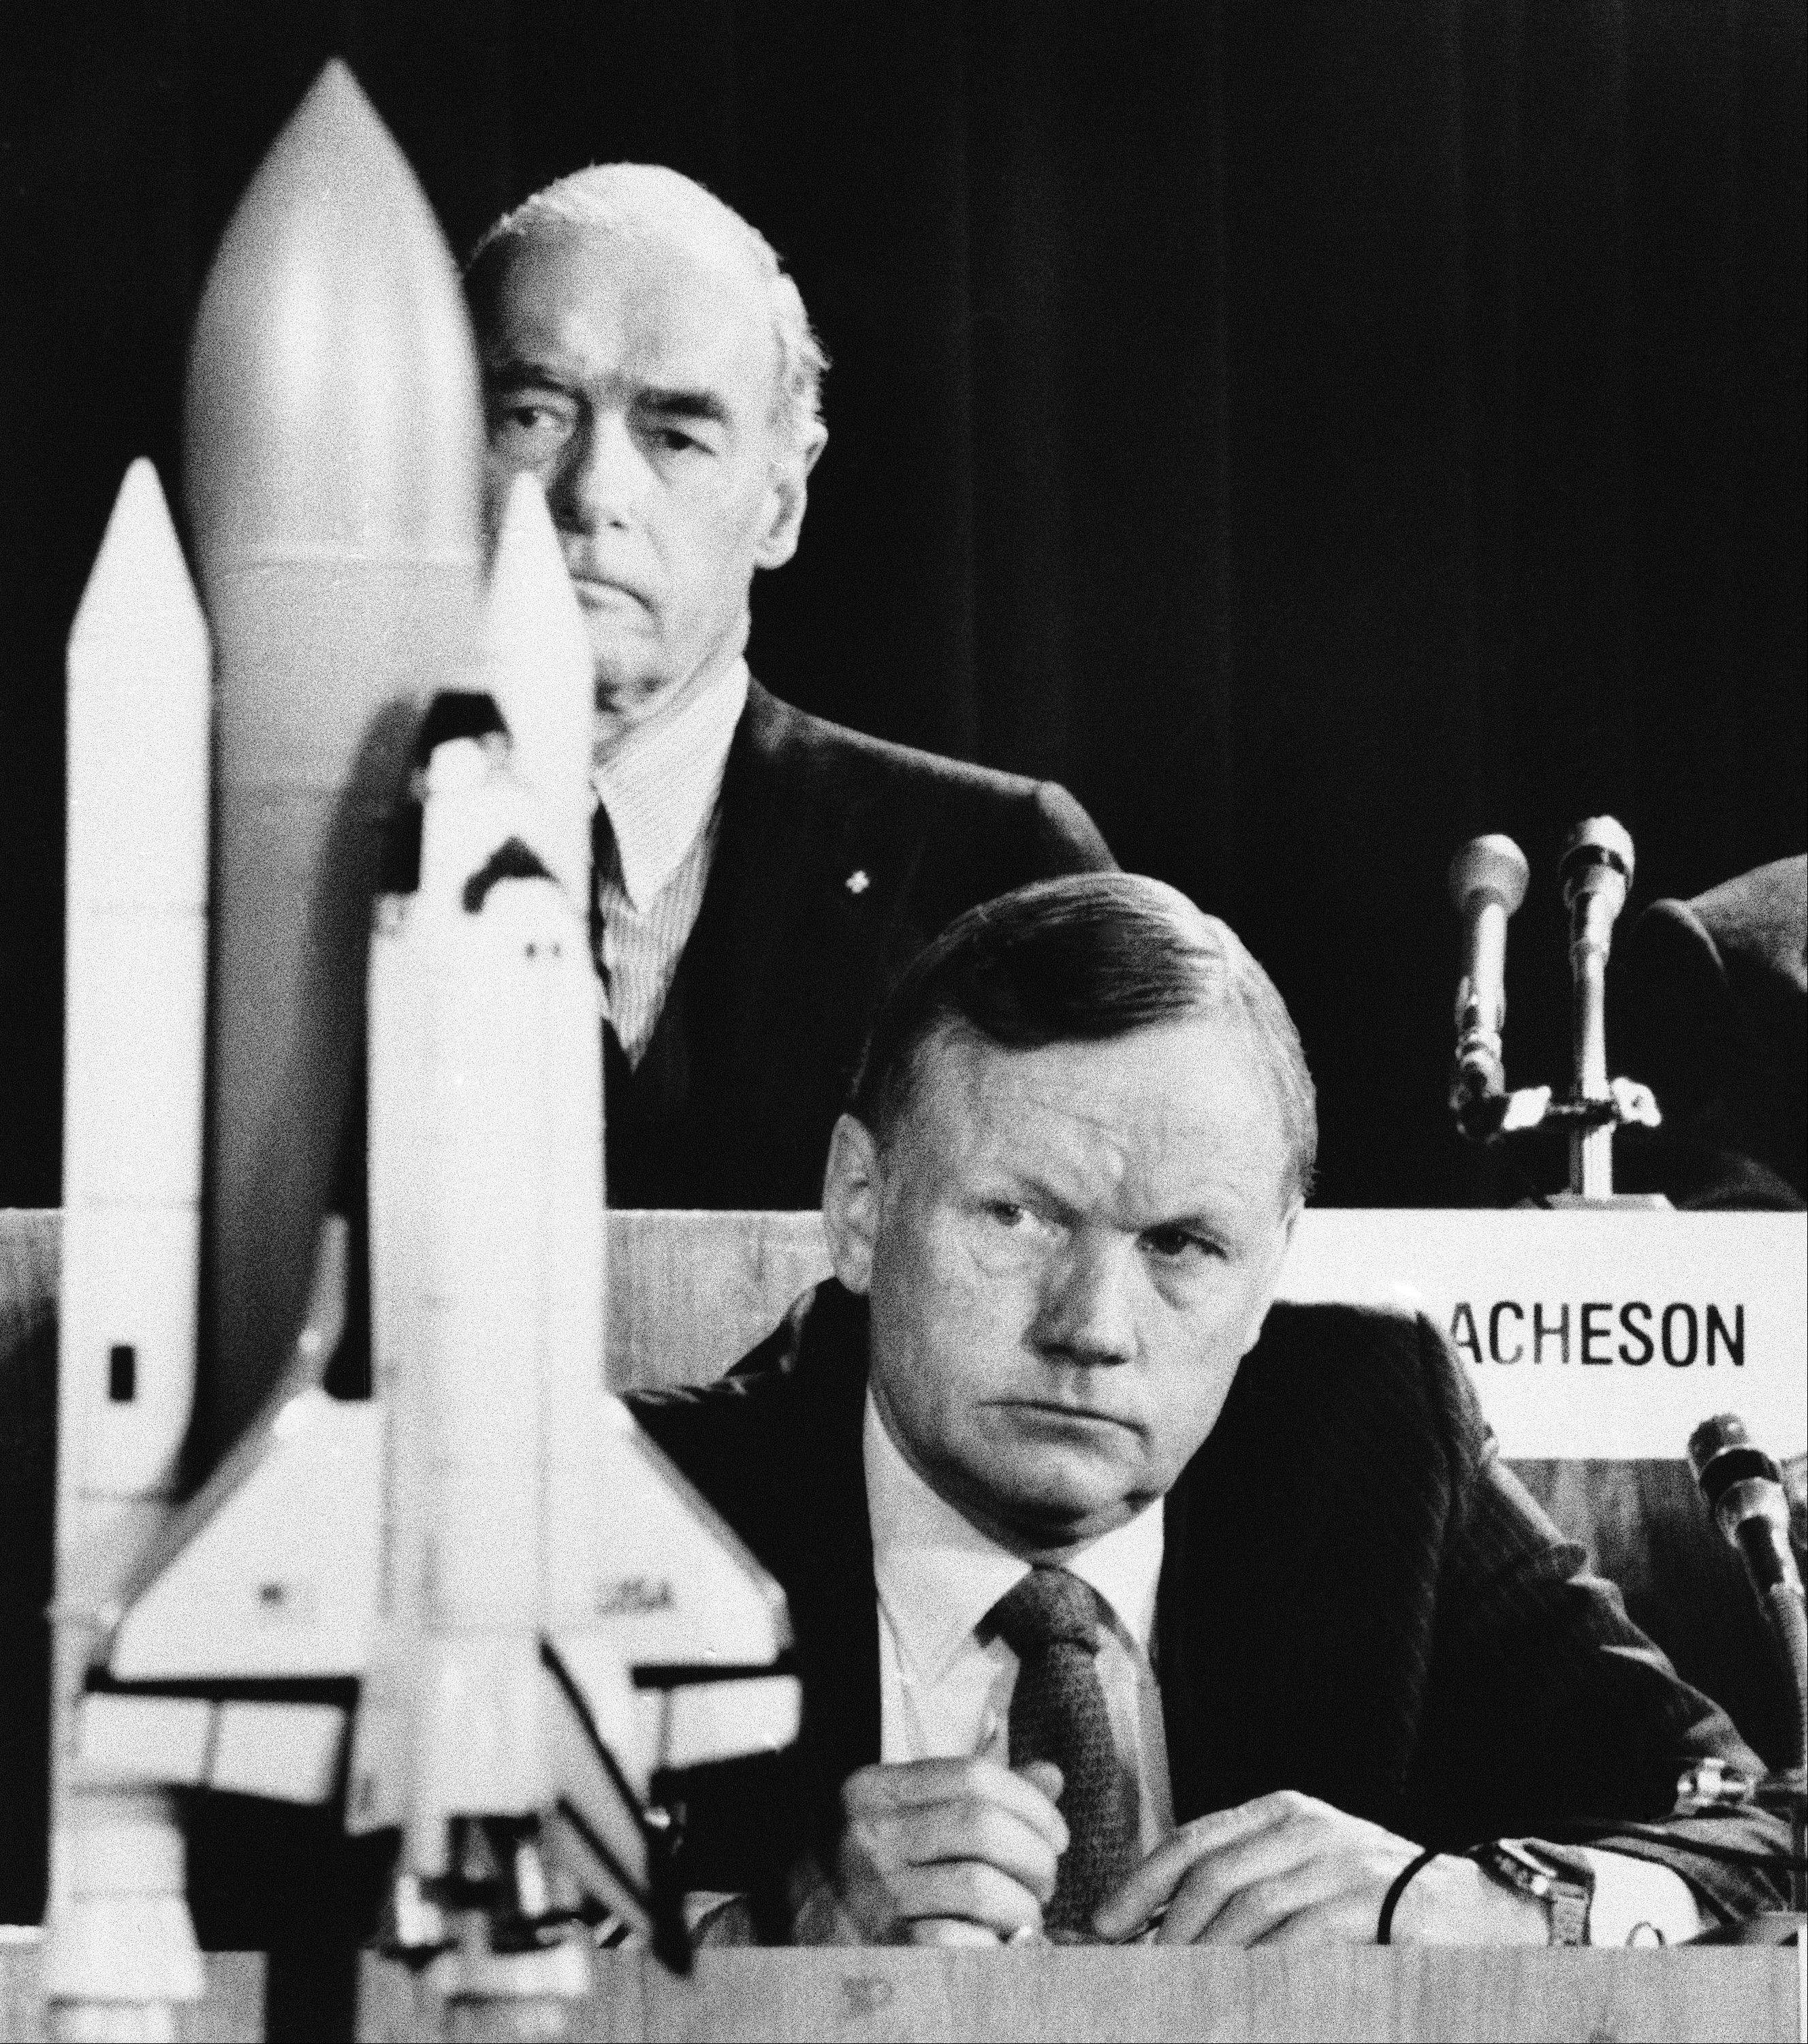 "In this Feb. 11, 1986 file photo, former astronaut Neil Armstrong, a member of the presidential panel investigating the Space Shuttle Challenger explosion, listens to testimony before the commission in Washington, David Acheson, a commission member, listens in the background. A model of the shuttle sits on the table. The family of Neil Armstrong, the first man to walk on the moon, says he has died at age 82. A statement from the family says he died following complications resulting from cardiovascular procedures. It doesn't say where he died. Armstrong commanded the Apollo 11 spacecraft that landed on the moon July 20, 1969. He radioed back to Earth the historic news of ""one giant leap for mankind."" Armstrong and fellow astronaut Edwin ""Buzz"" Aldrin spent nearly three hours walking on the moon, collecting samples, conducting experiments and taking photographs. In all, 12 Americans walked on the moon from 1969 to 1972."